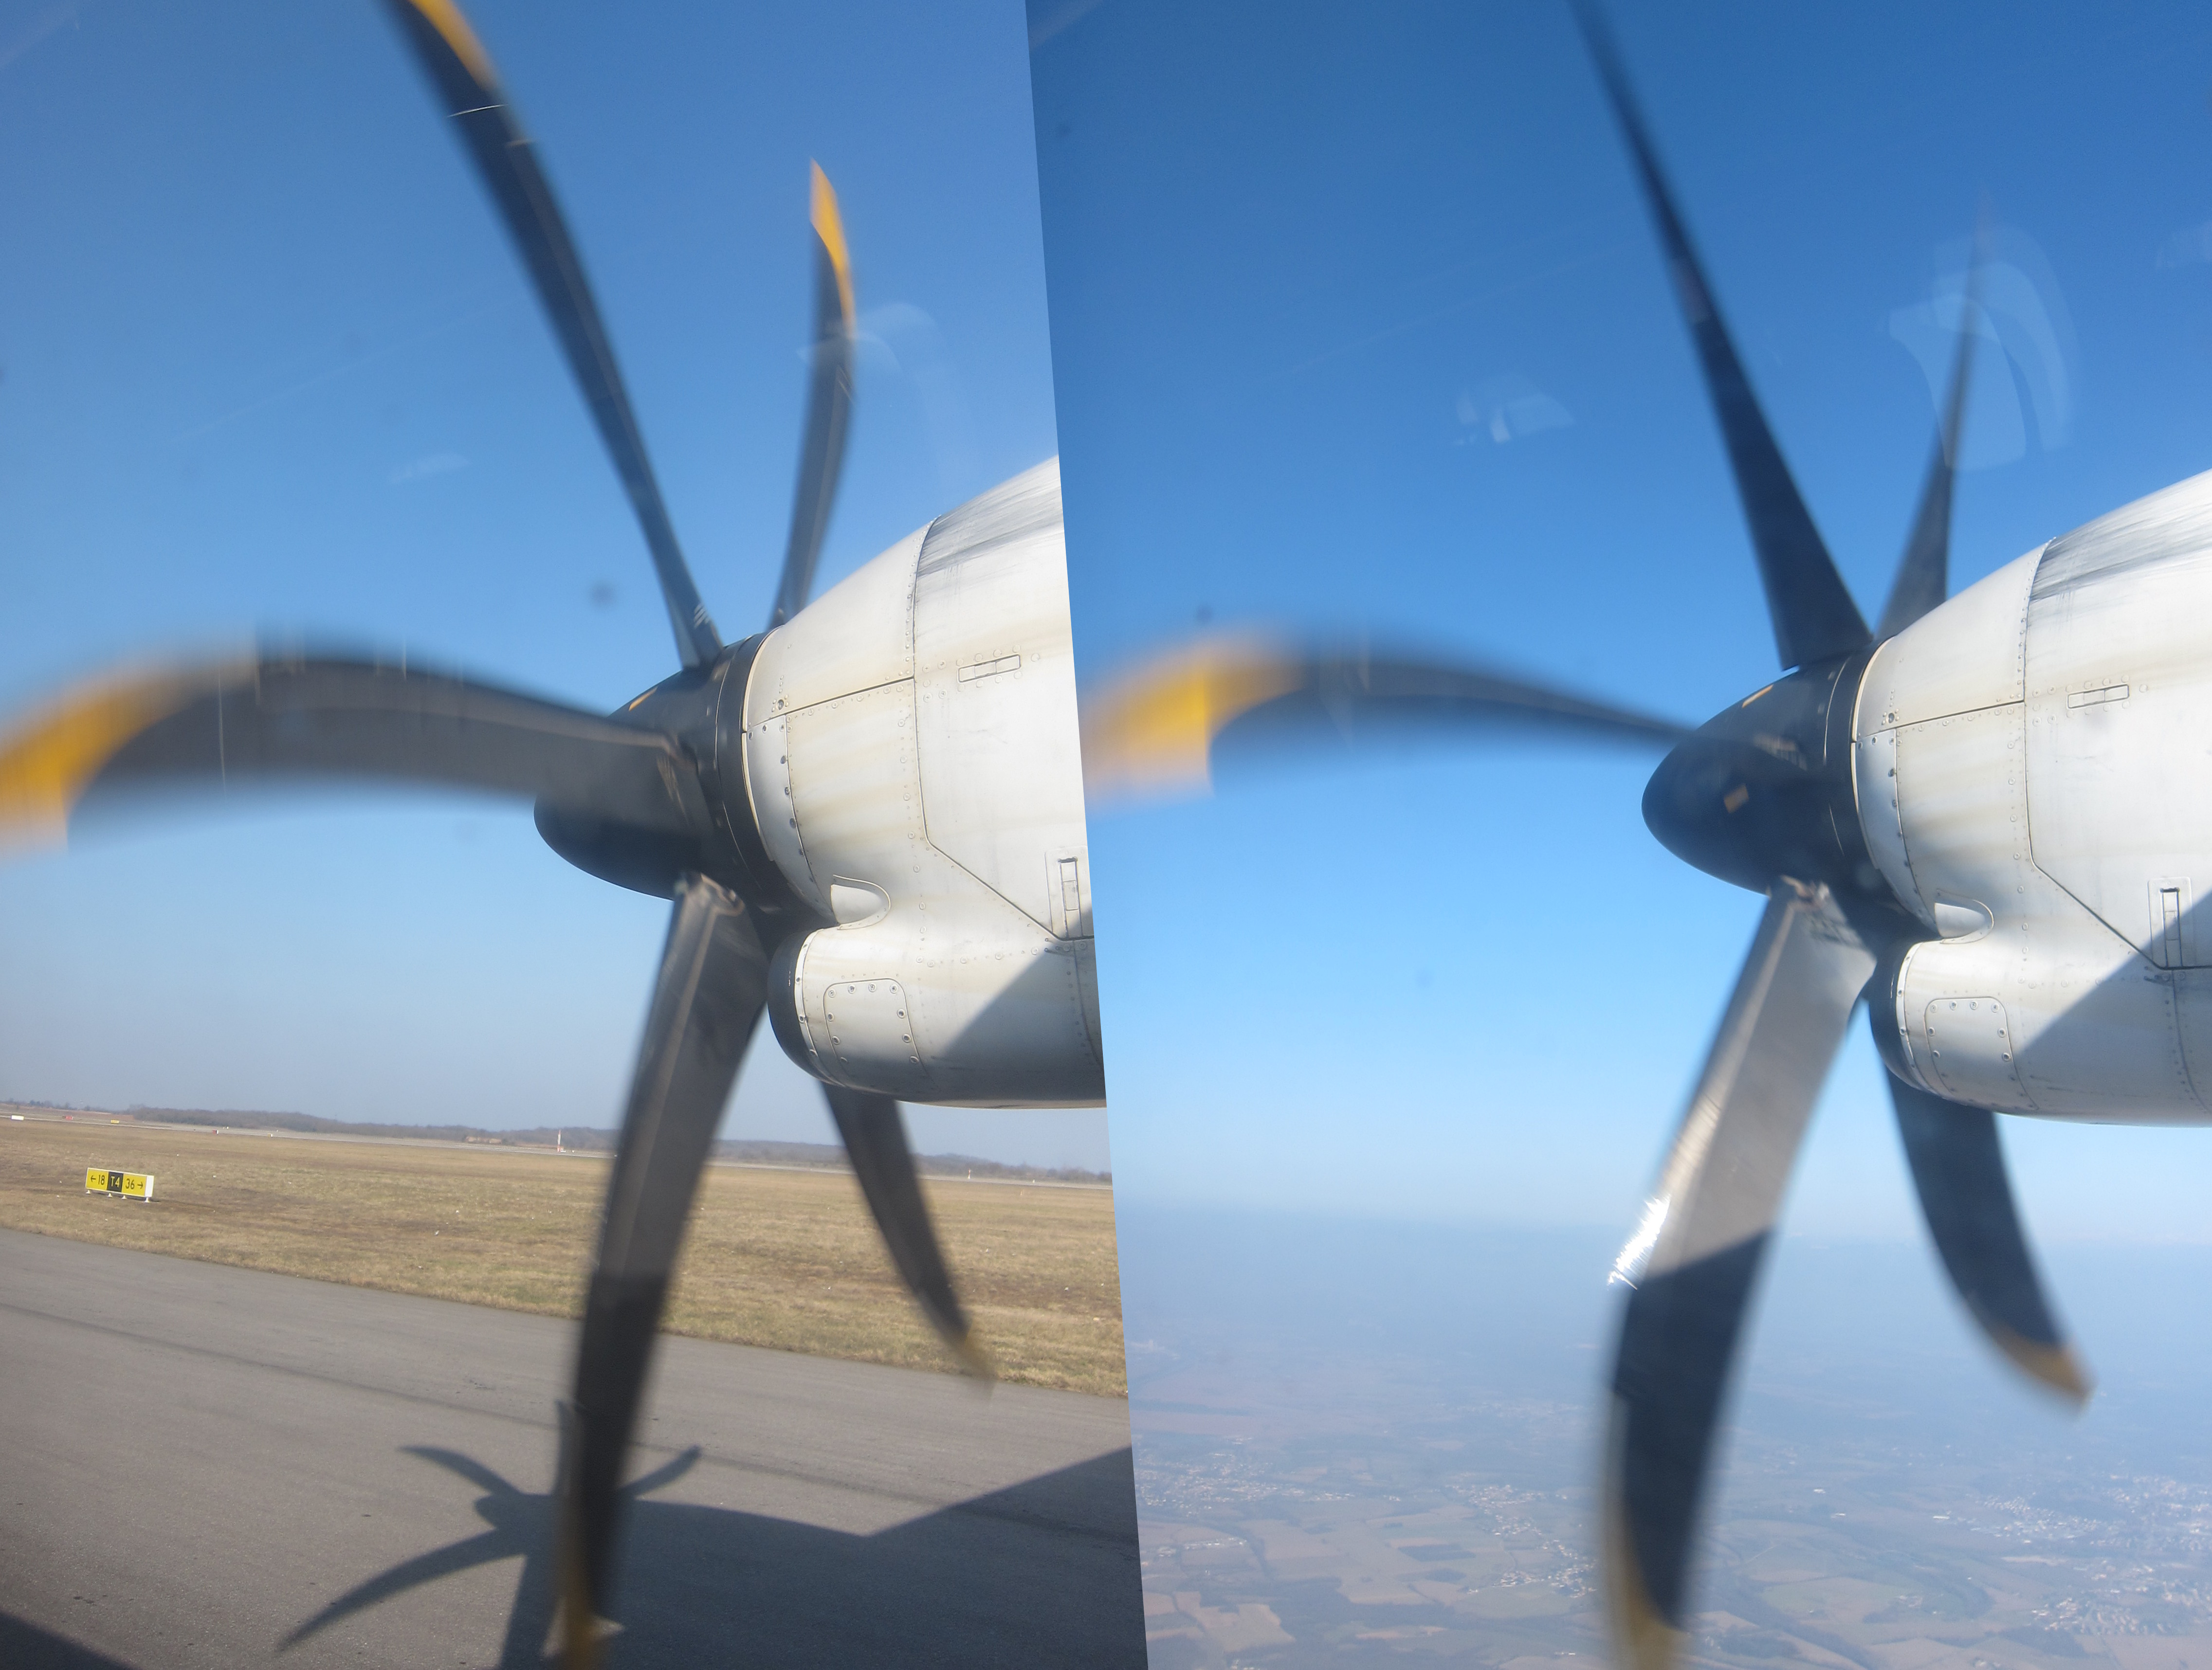 File:Propeller pitch on an ATR 72 jpg - Wikimedia Commons